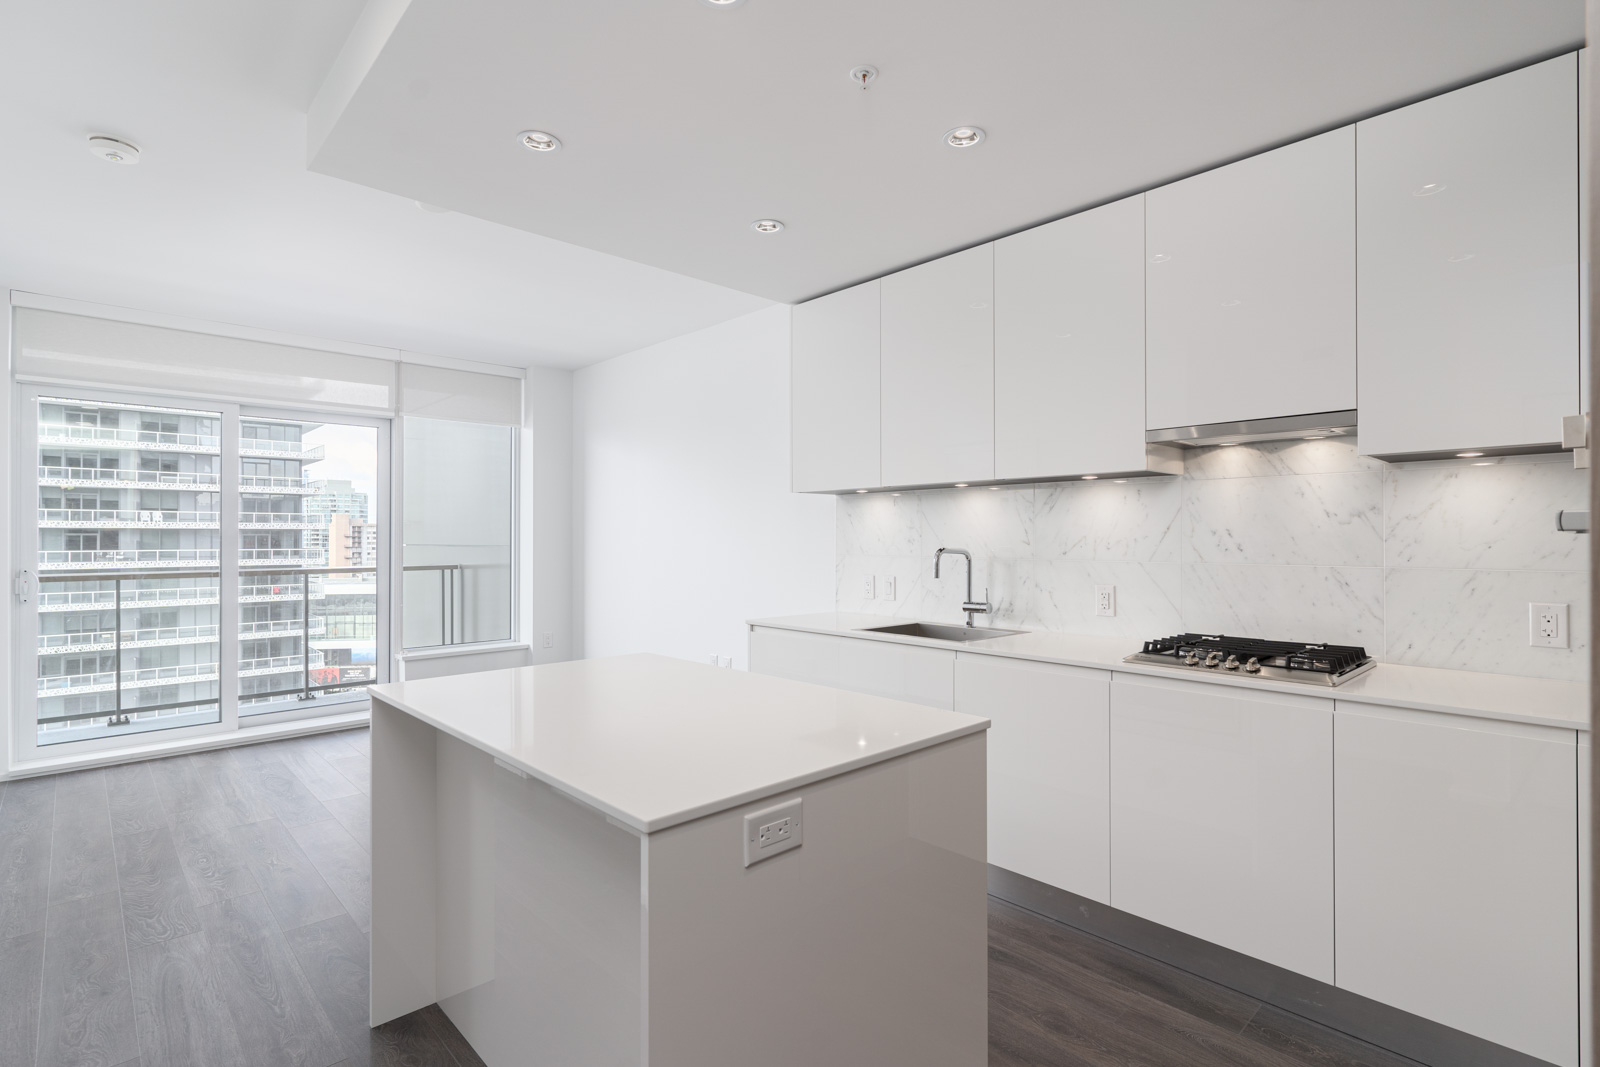 White furnishing around the kitchen for a clean and sleek living experience in the downtown of burnaby